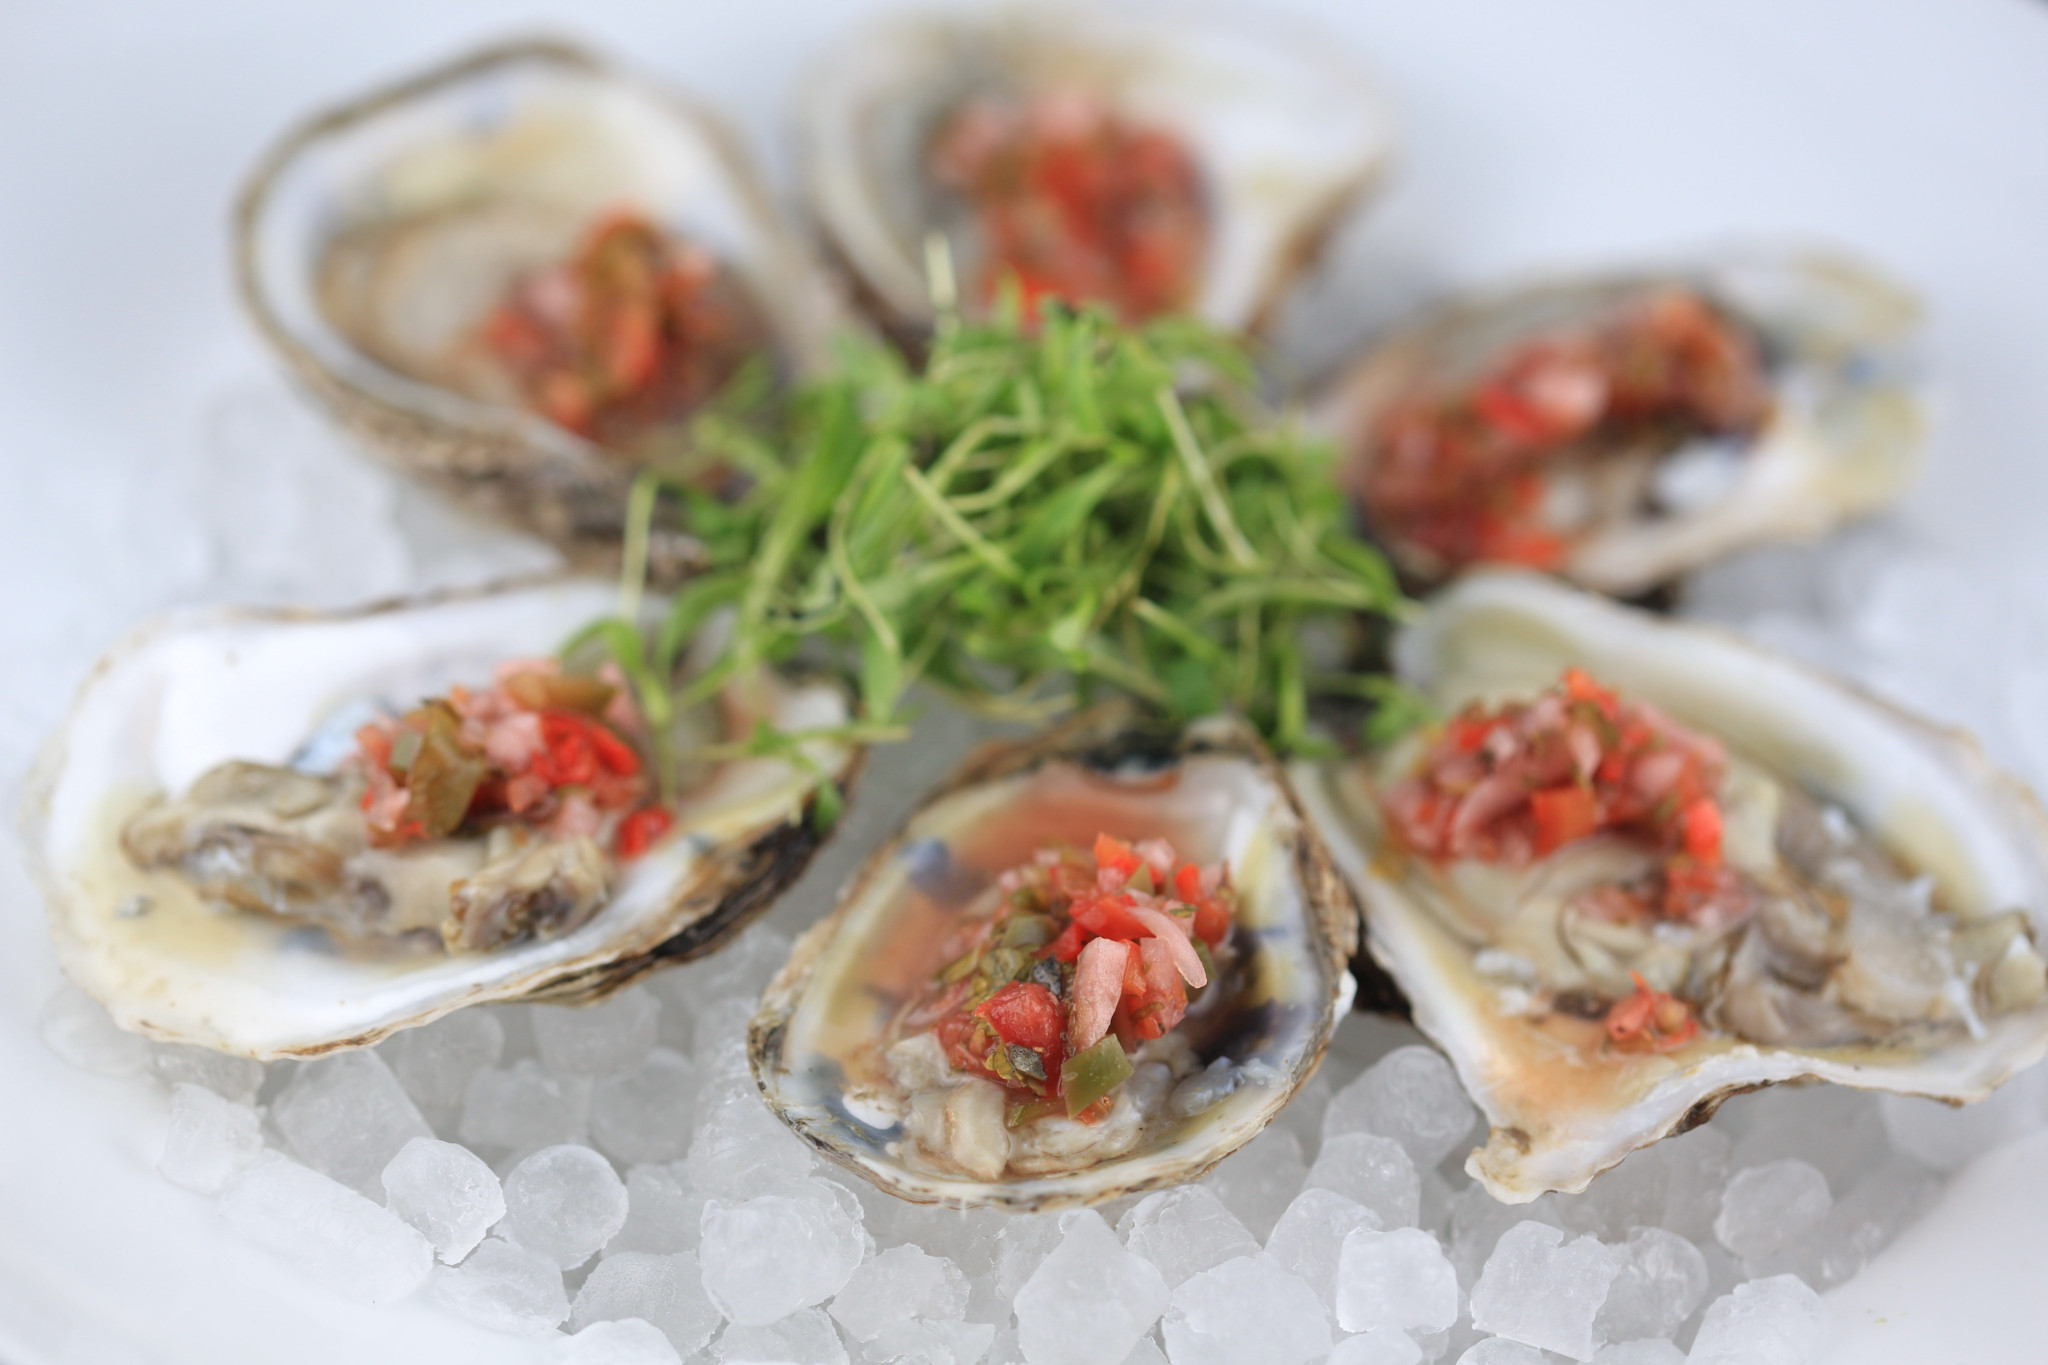 Oyster mignonette recipes